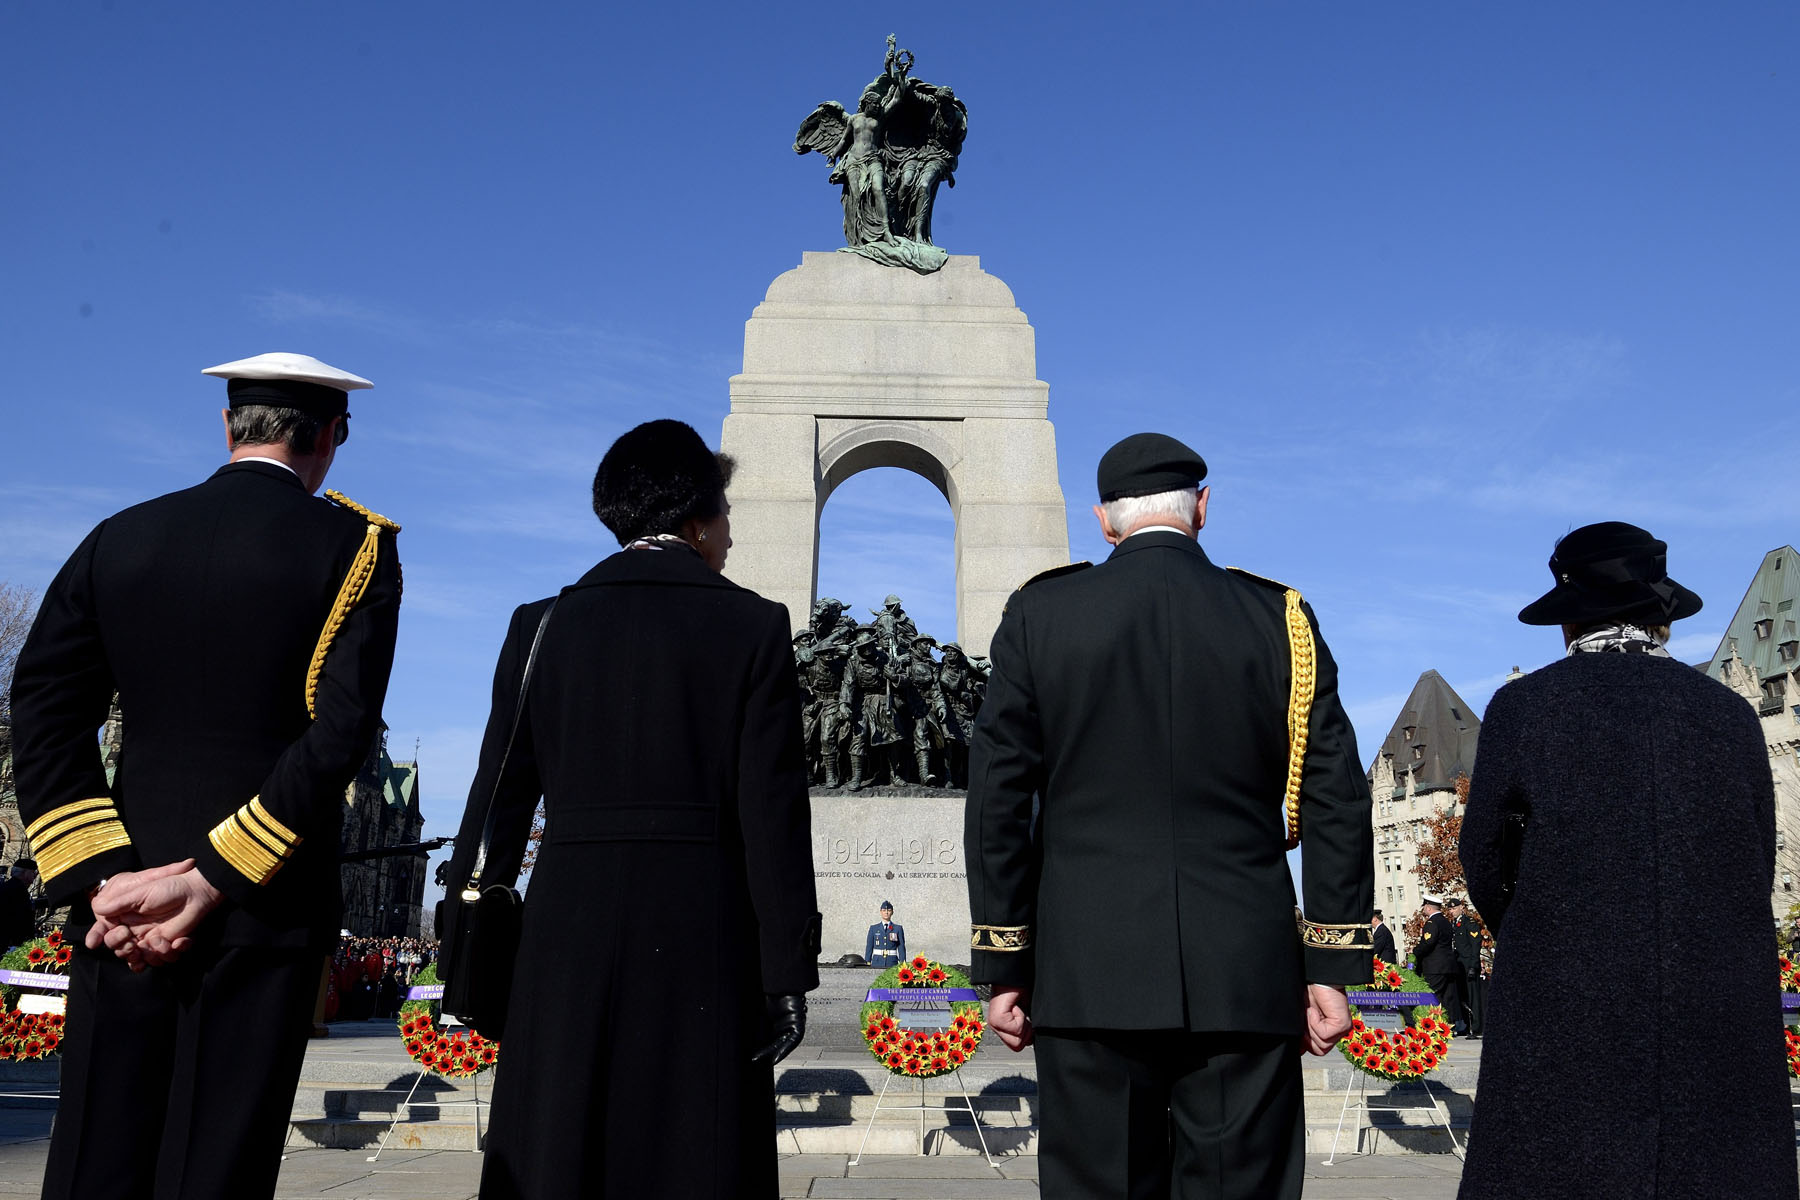 The ceremony had an added special significance this year, following the events that took place at the National War Memorial on October 22, 2014, and the death of Warrant Officer Patrice Vincent and Corporal Nathan Cirillo.